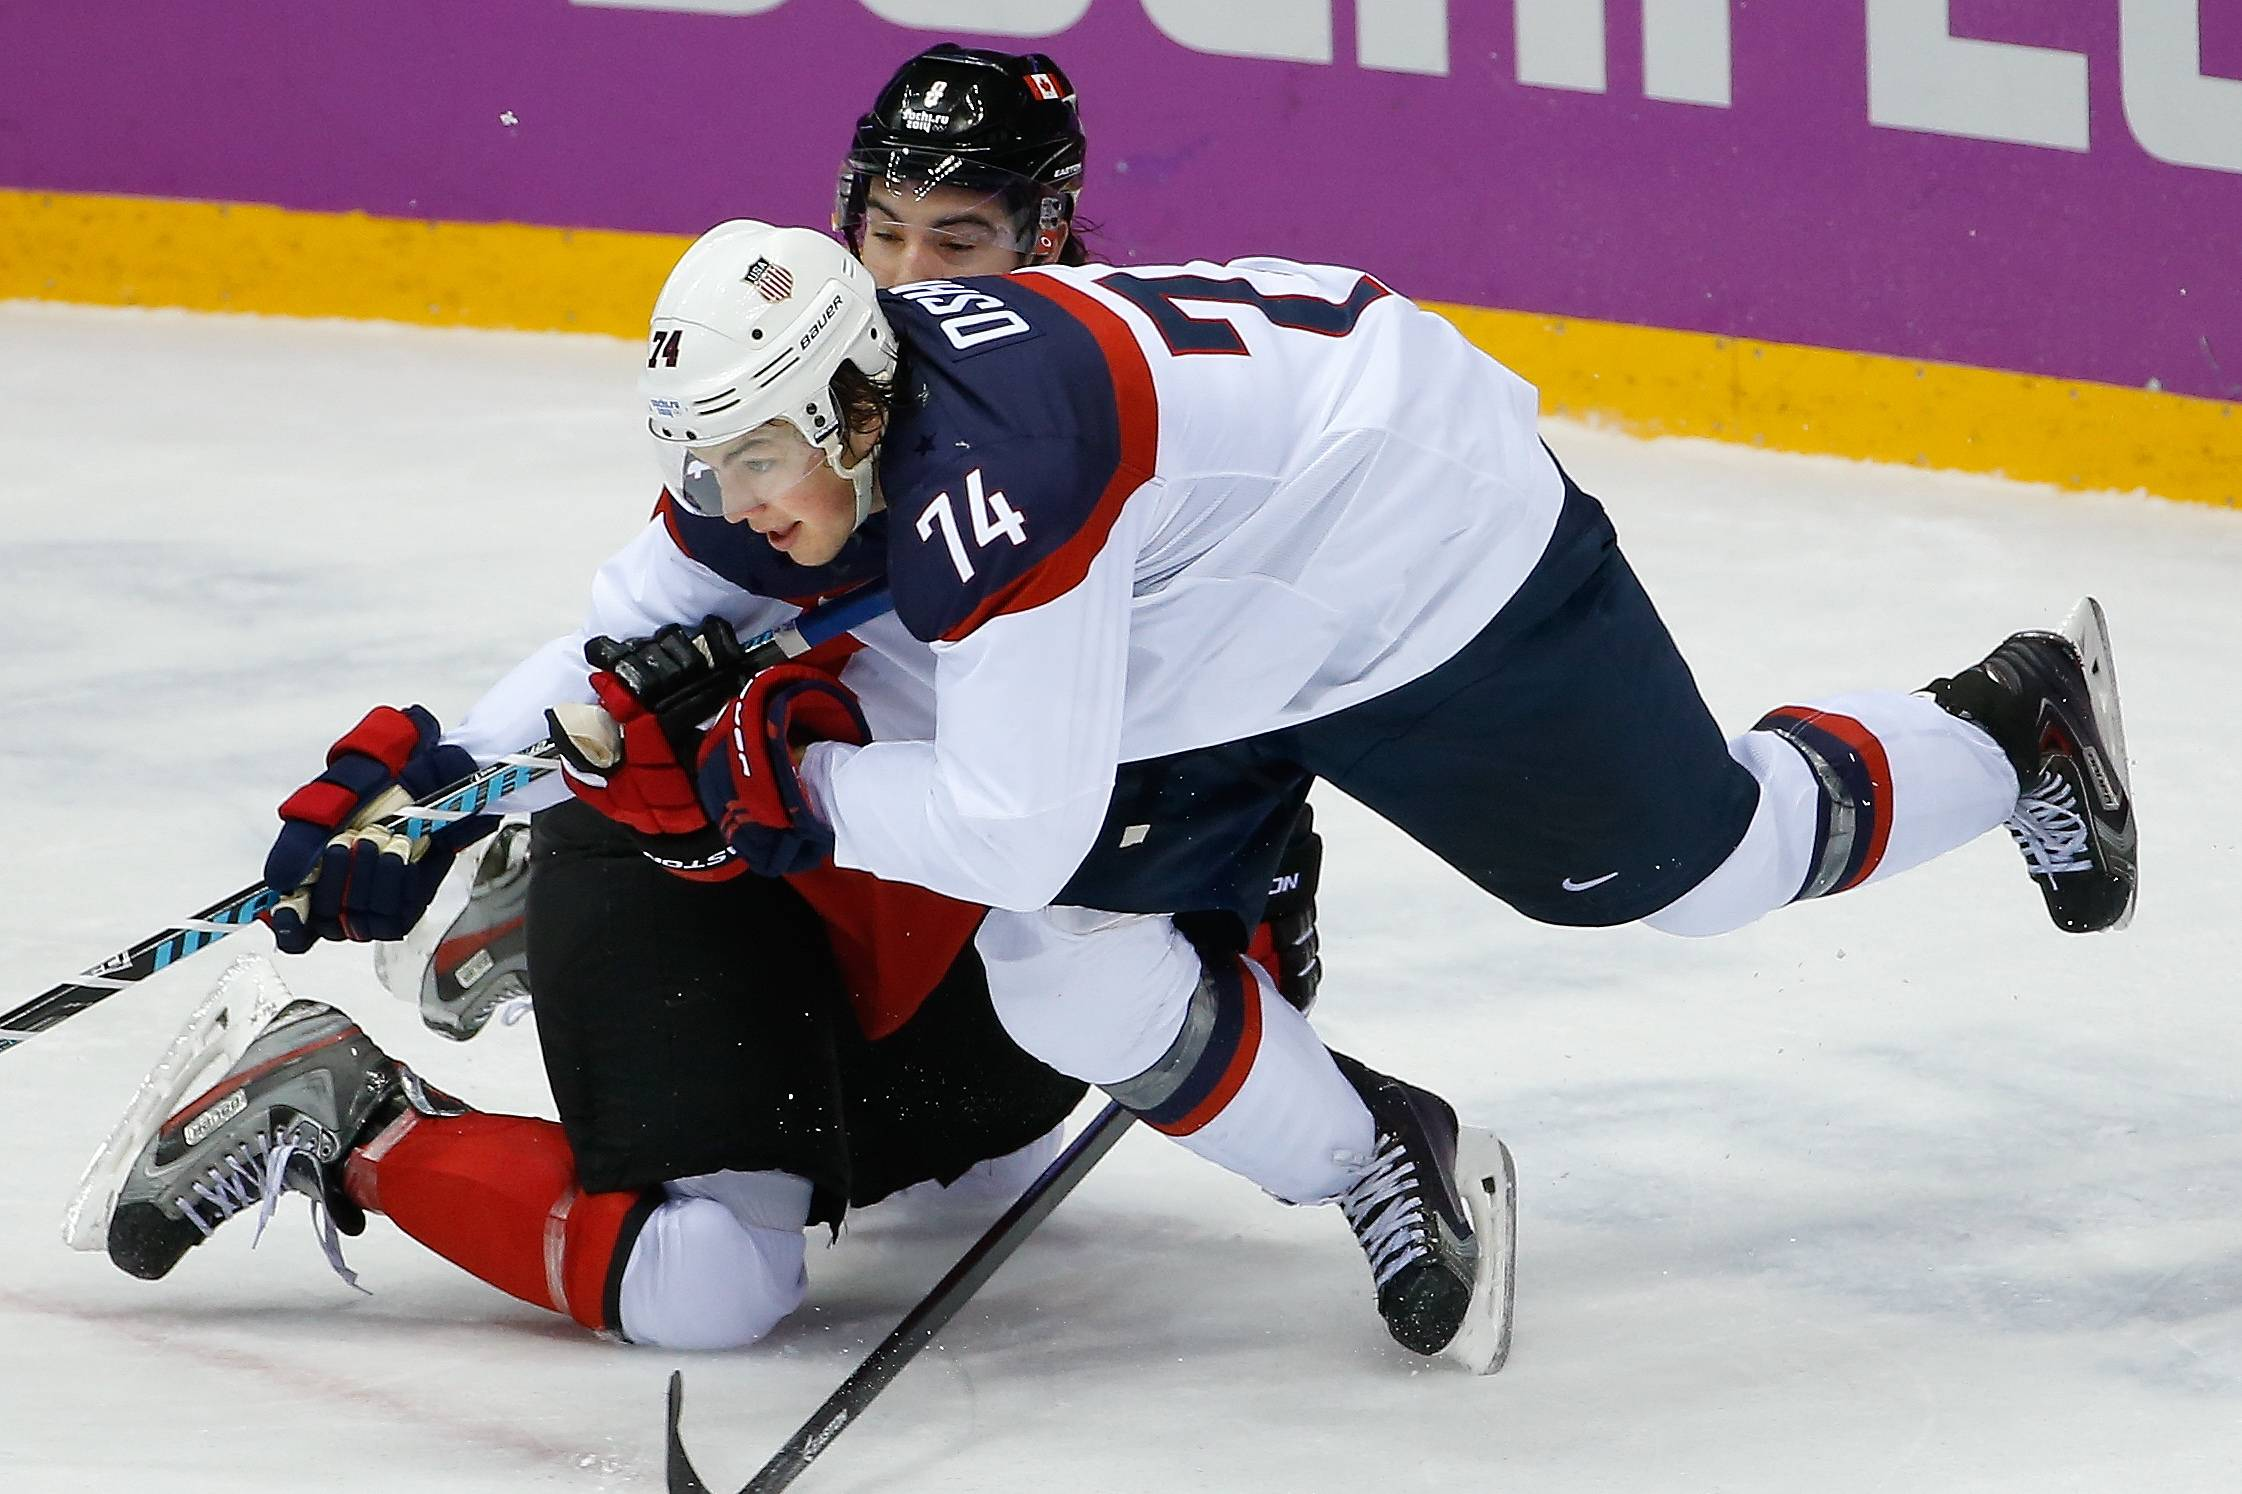 Canada defenseman Drew Doughty and USA forward T.J. Oshie collide on the ice during the second period.